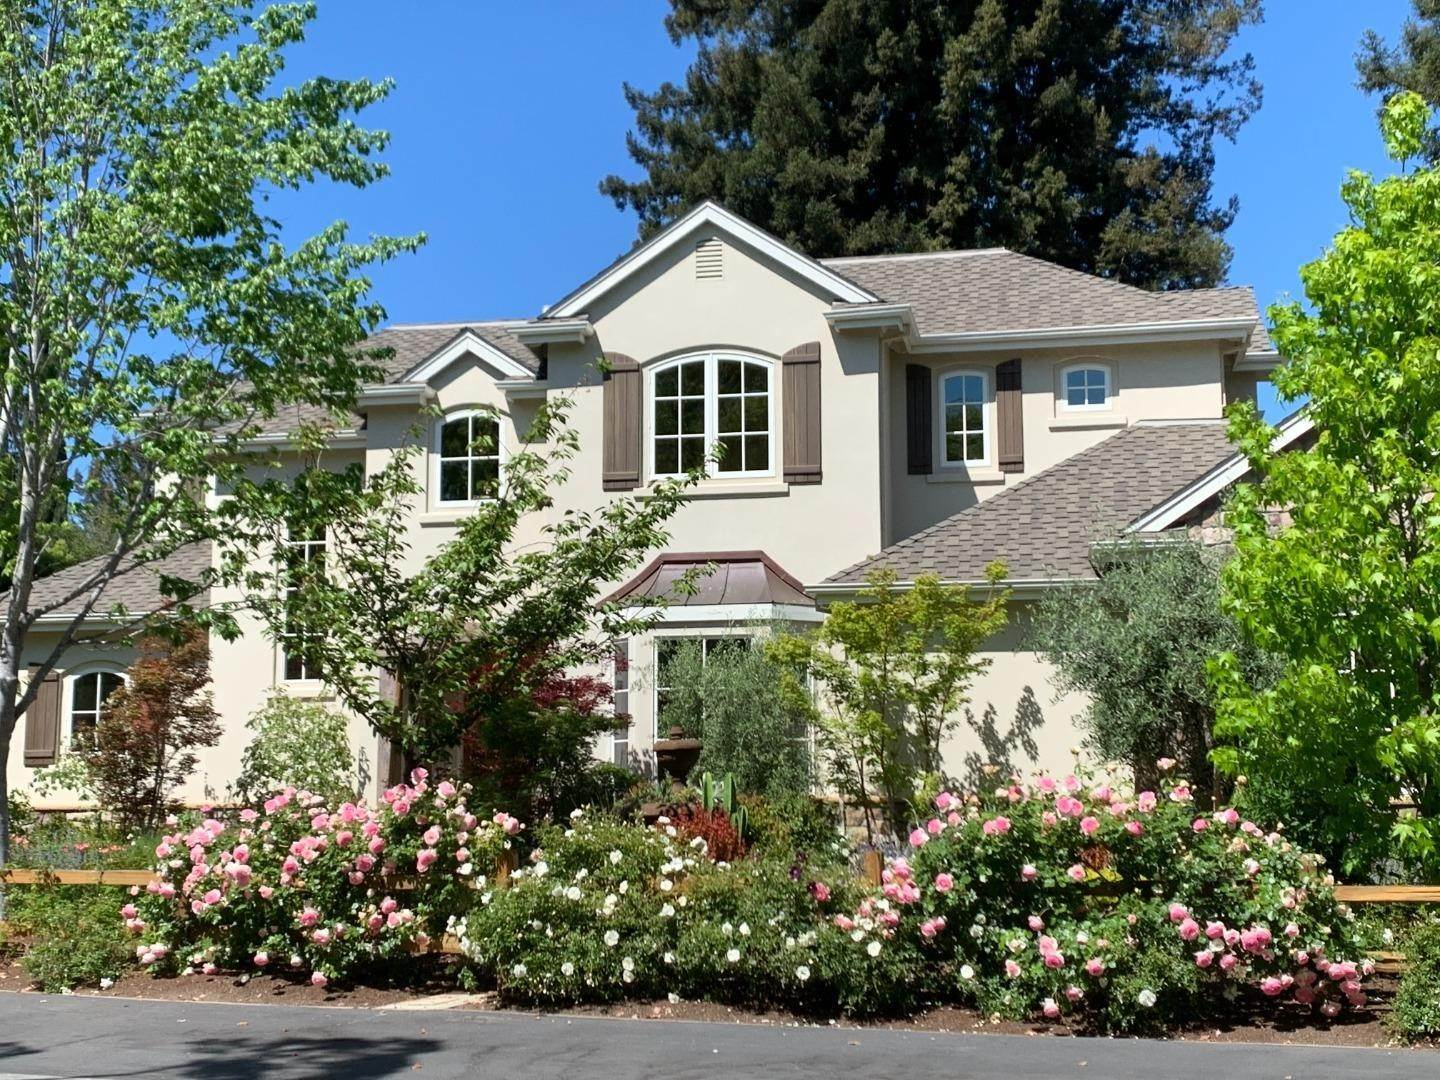 Single Family Homes for Sale at 570 Oakfield Lane Menlo Park, California 94025 United States